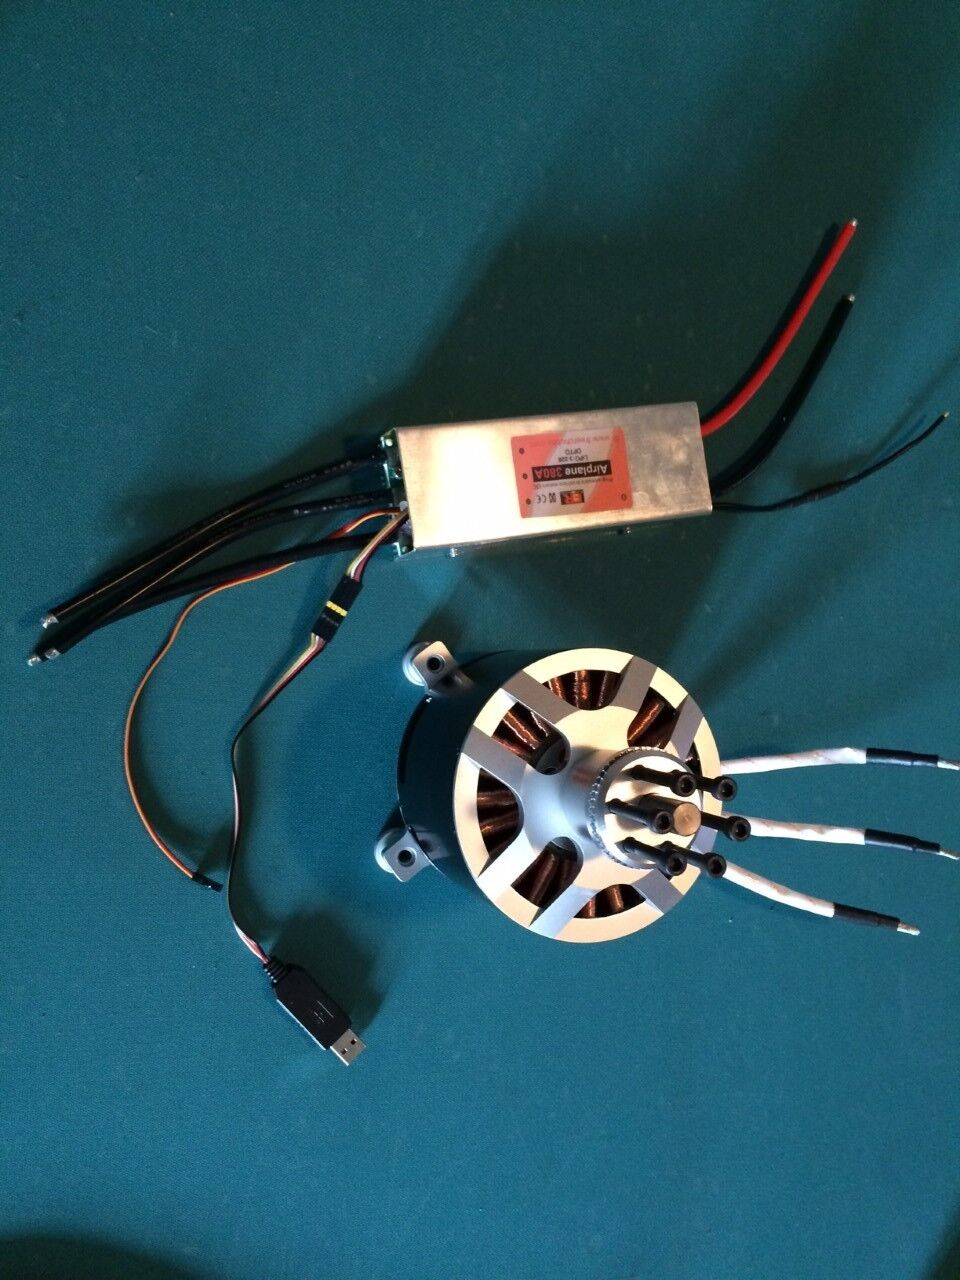 120100 brushless  outcorrerener electric motor 50KV with 22s 380A ESC  Negozio 2018